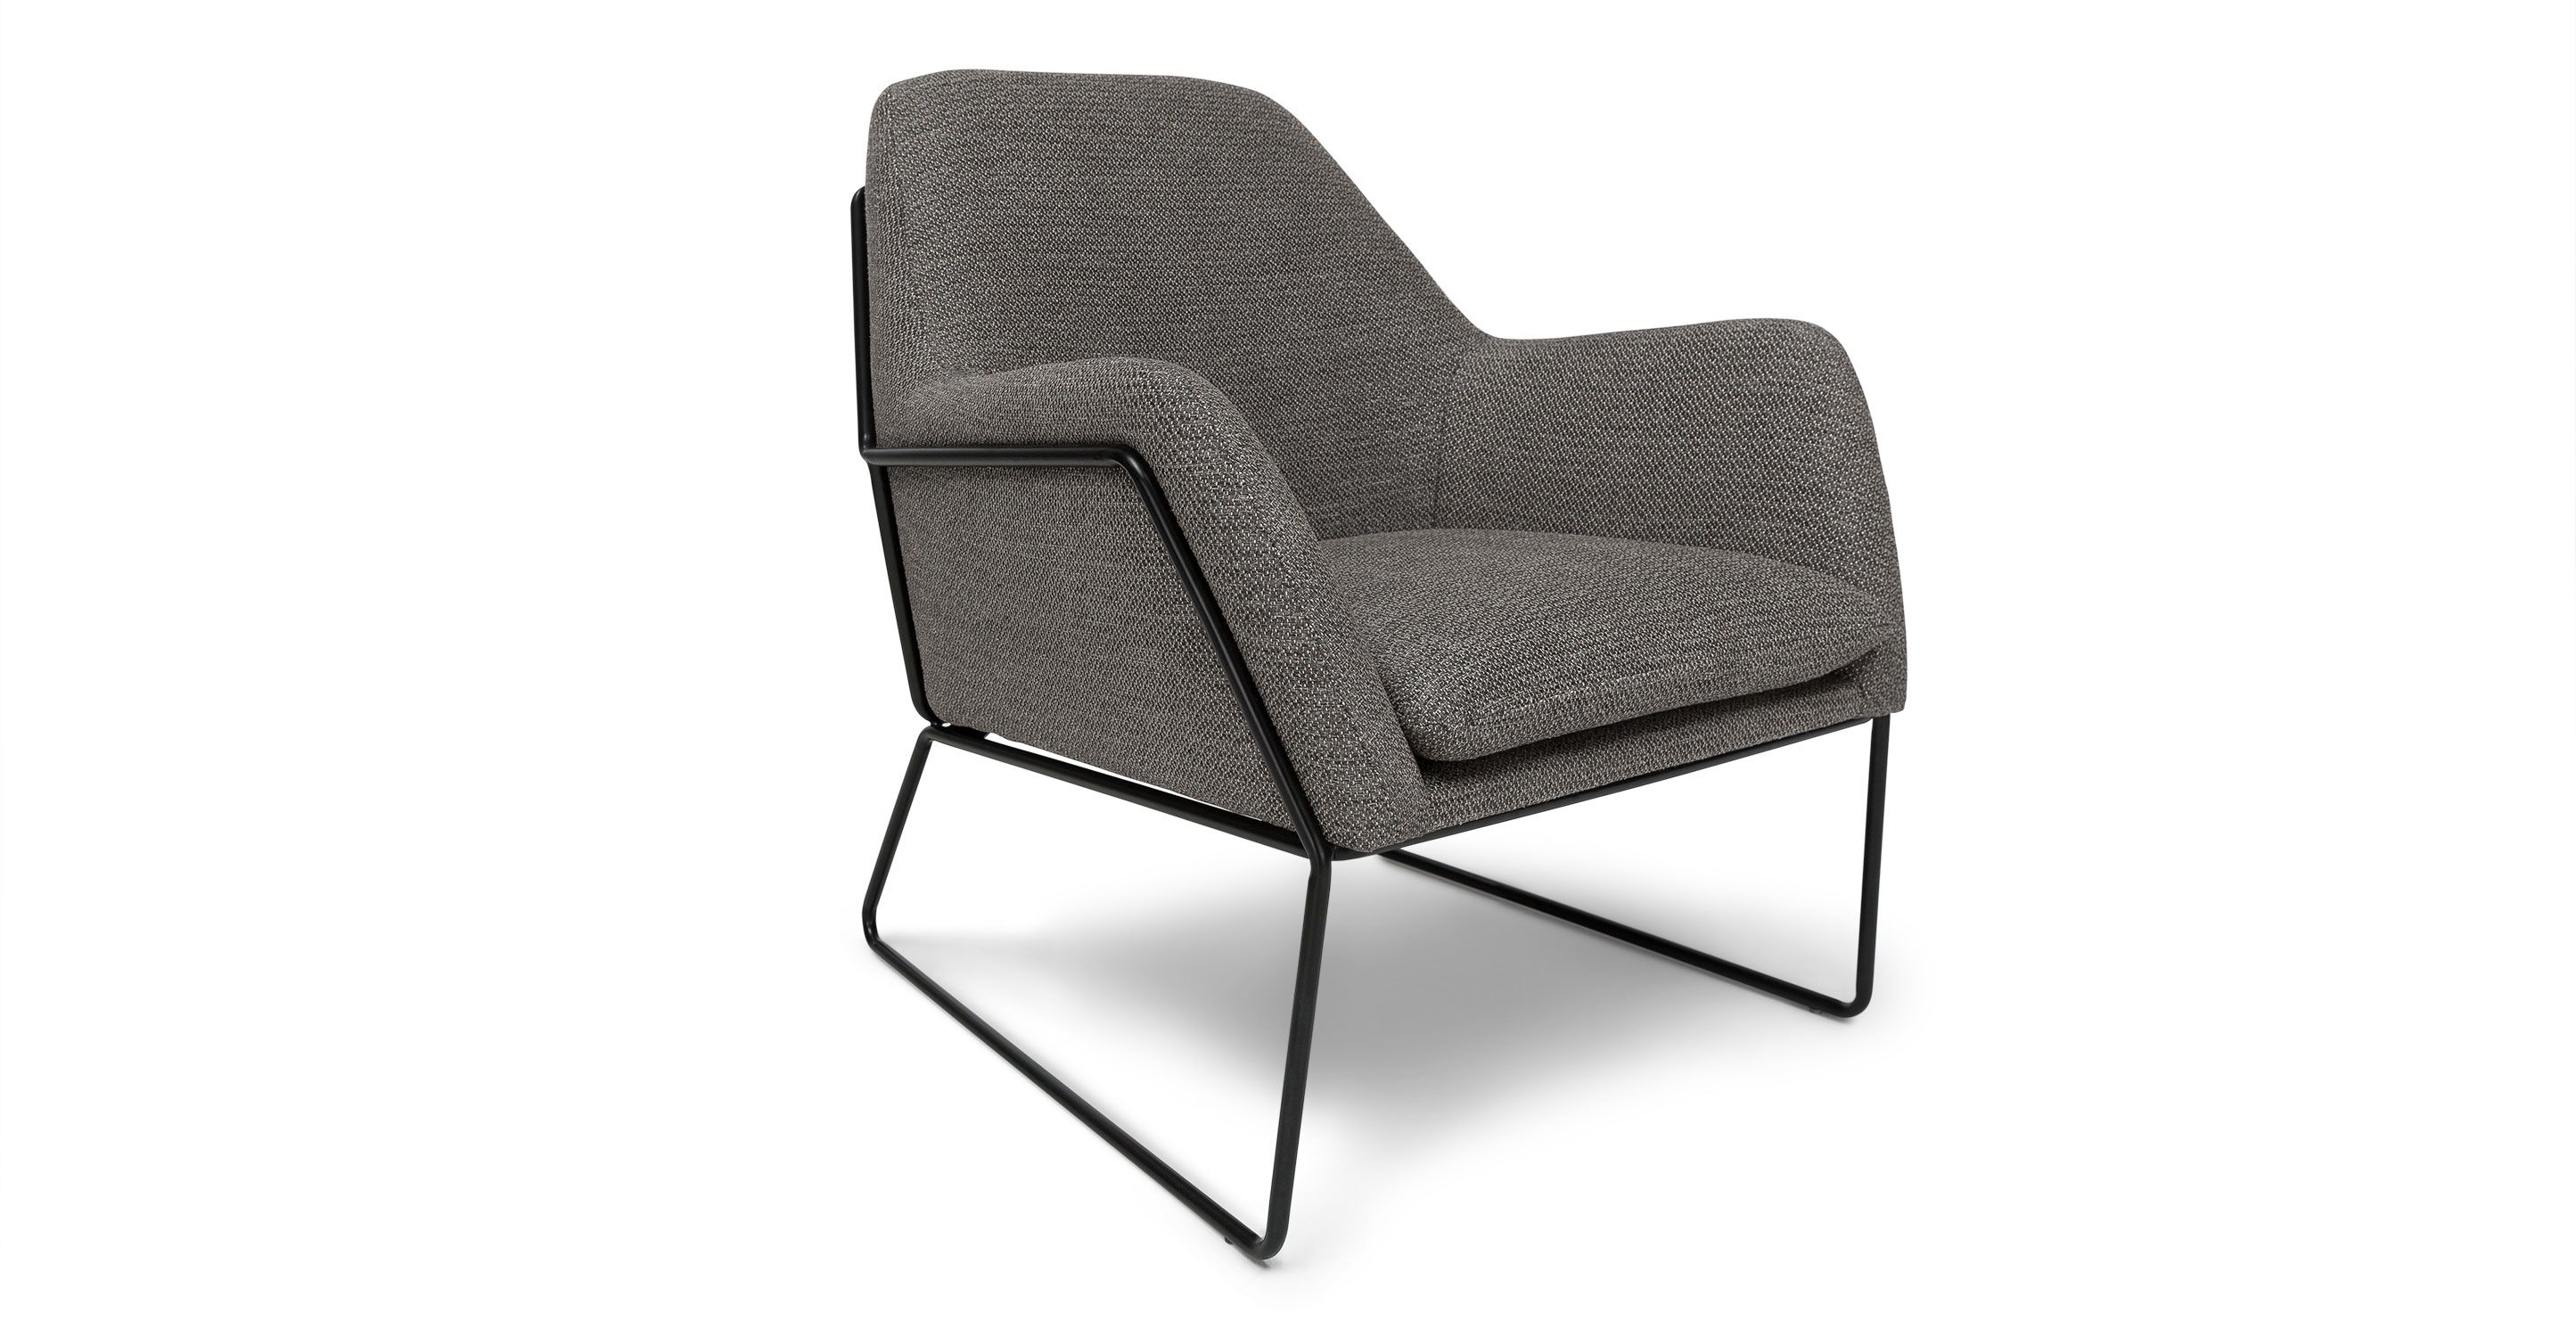 Forma Meteorite Gray Chair   Lounge Chairs   Article | Modern, Mid Century  And Scandinavian Furniture